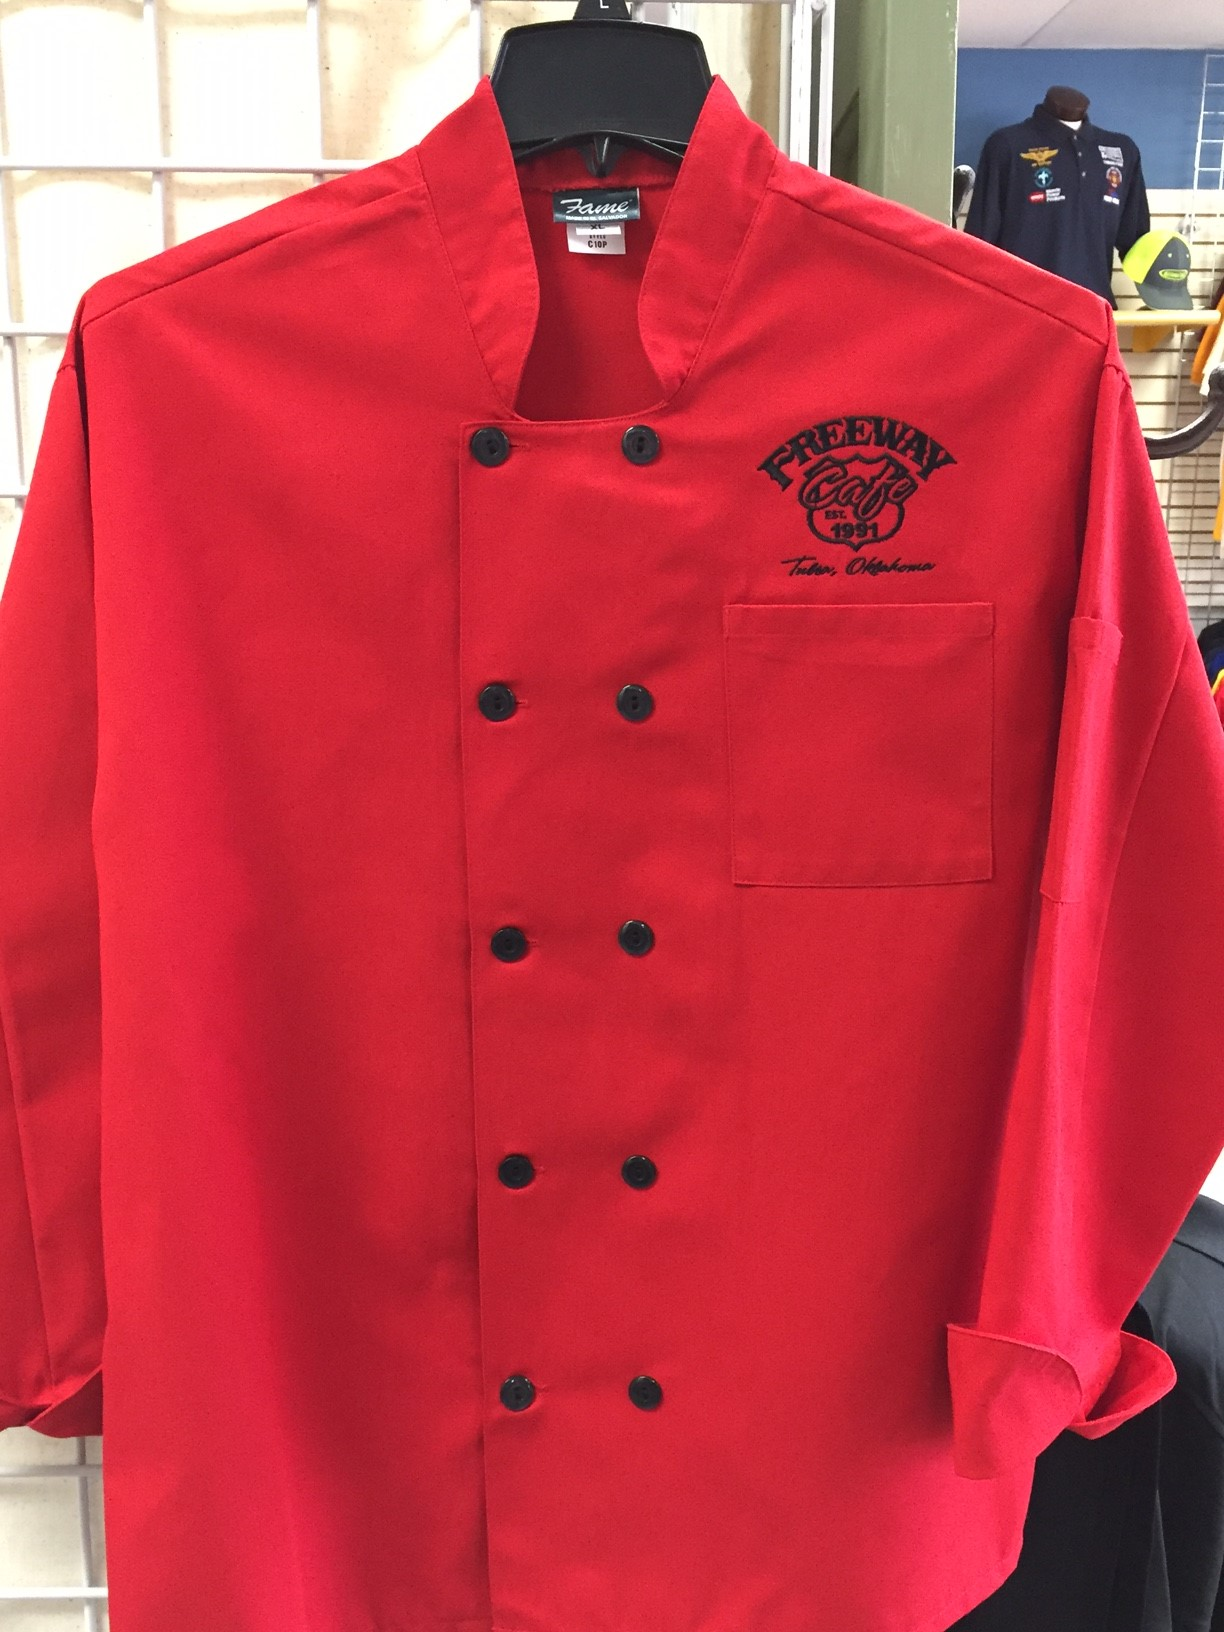 Corporate Chef Coat